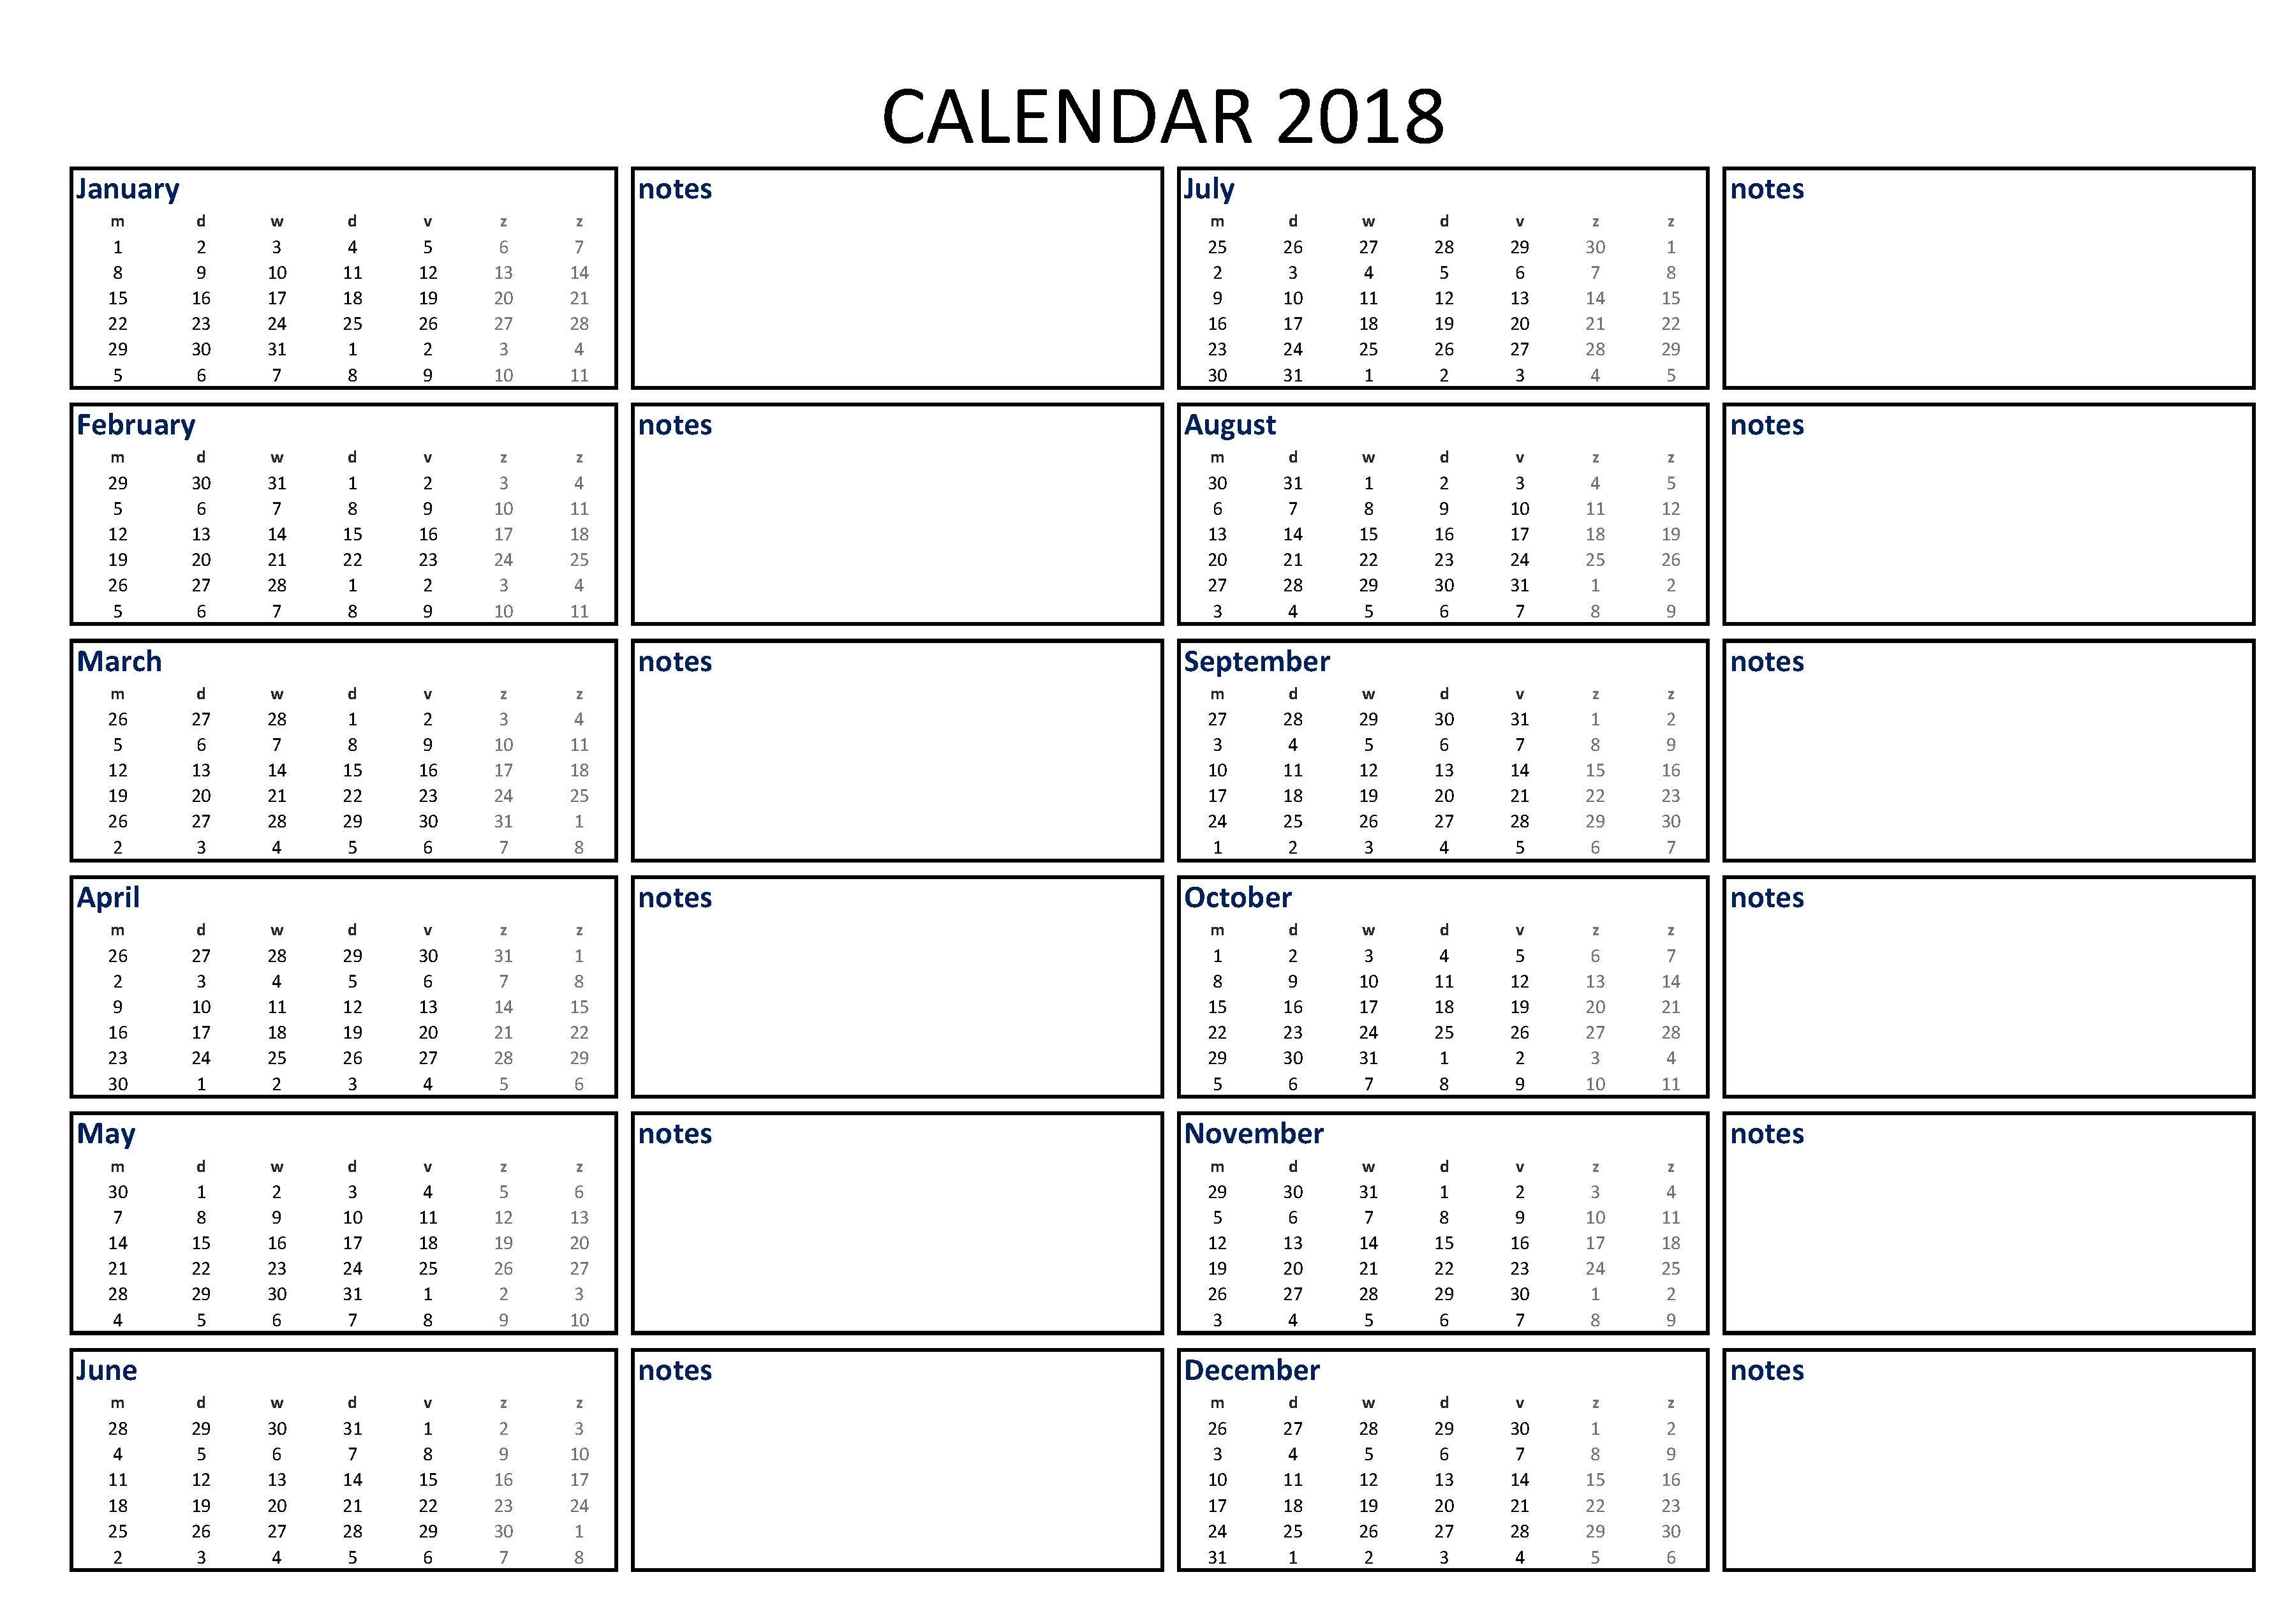 Free Calendar Excel Template A3 With Notes